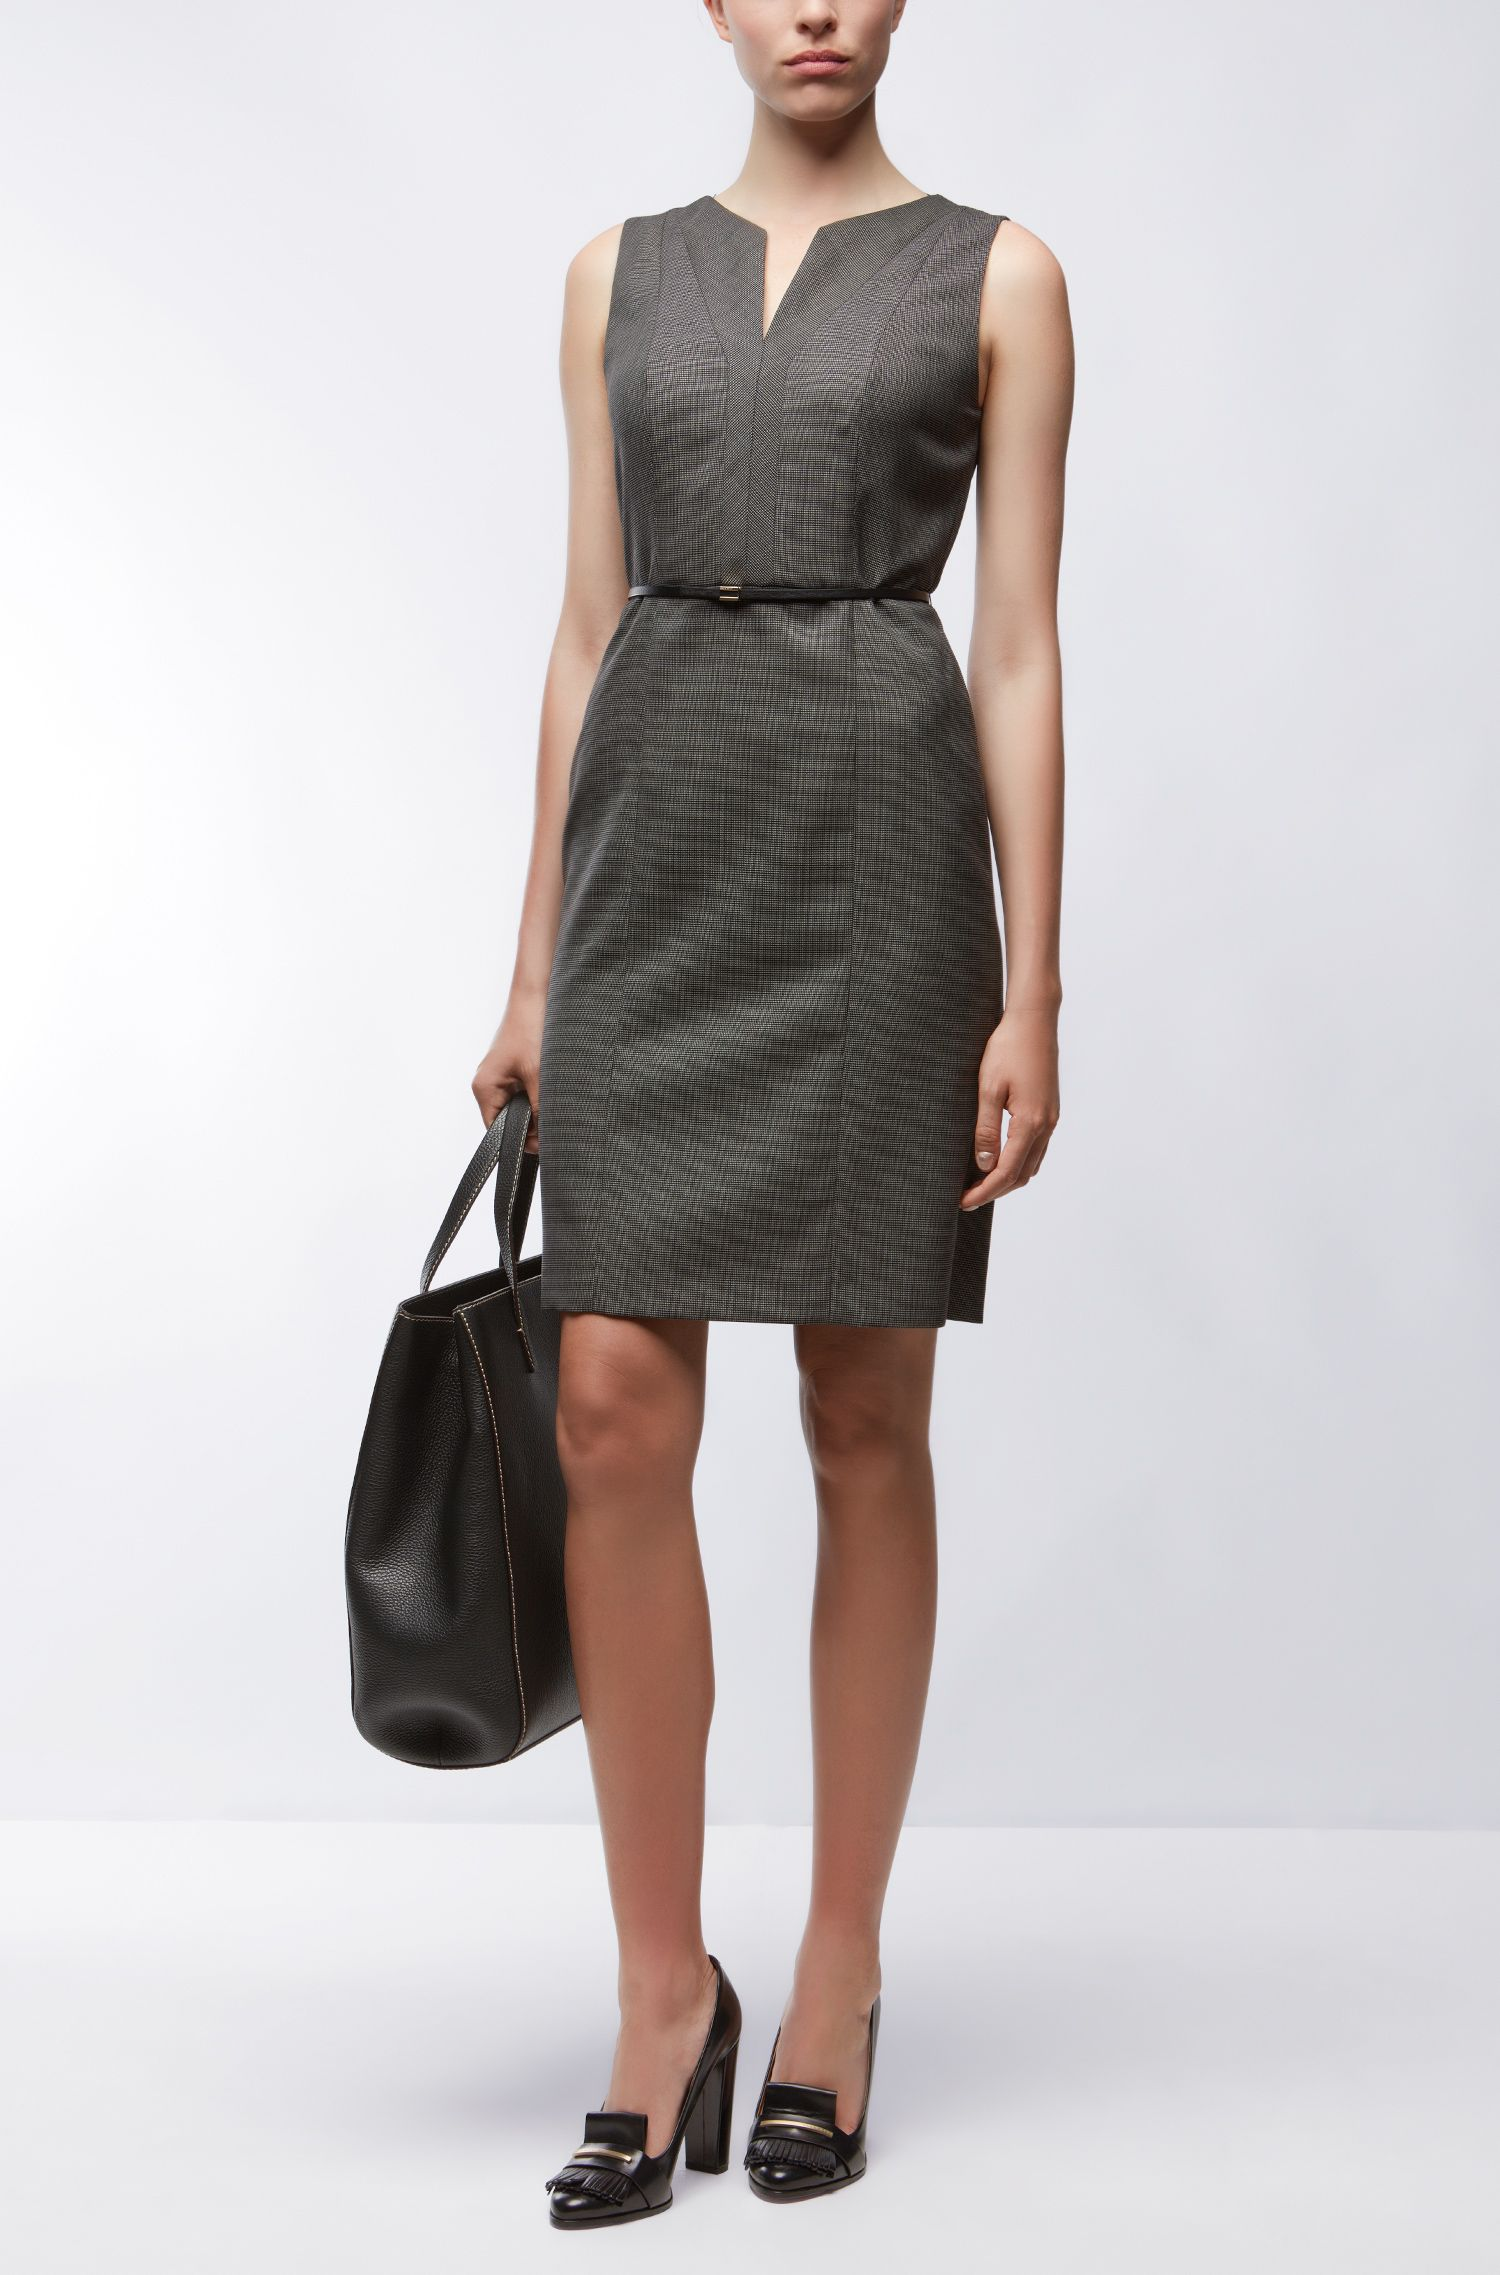 Stretch Virgin Wool Sheath Dress | Dalanda